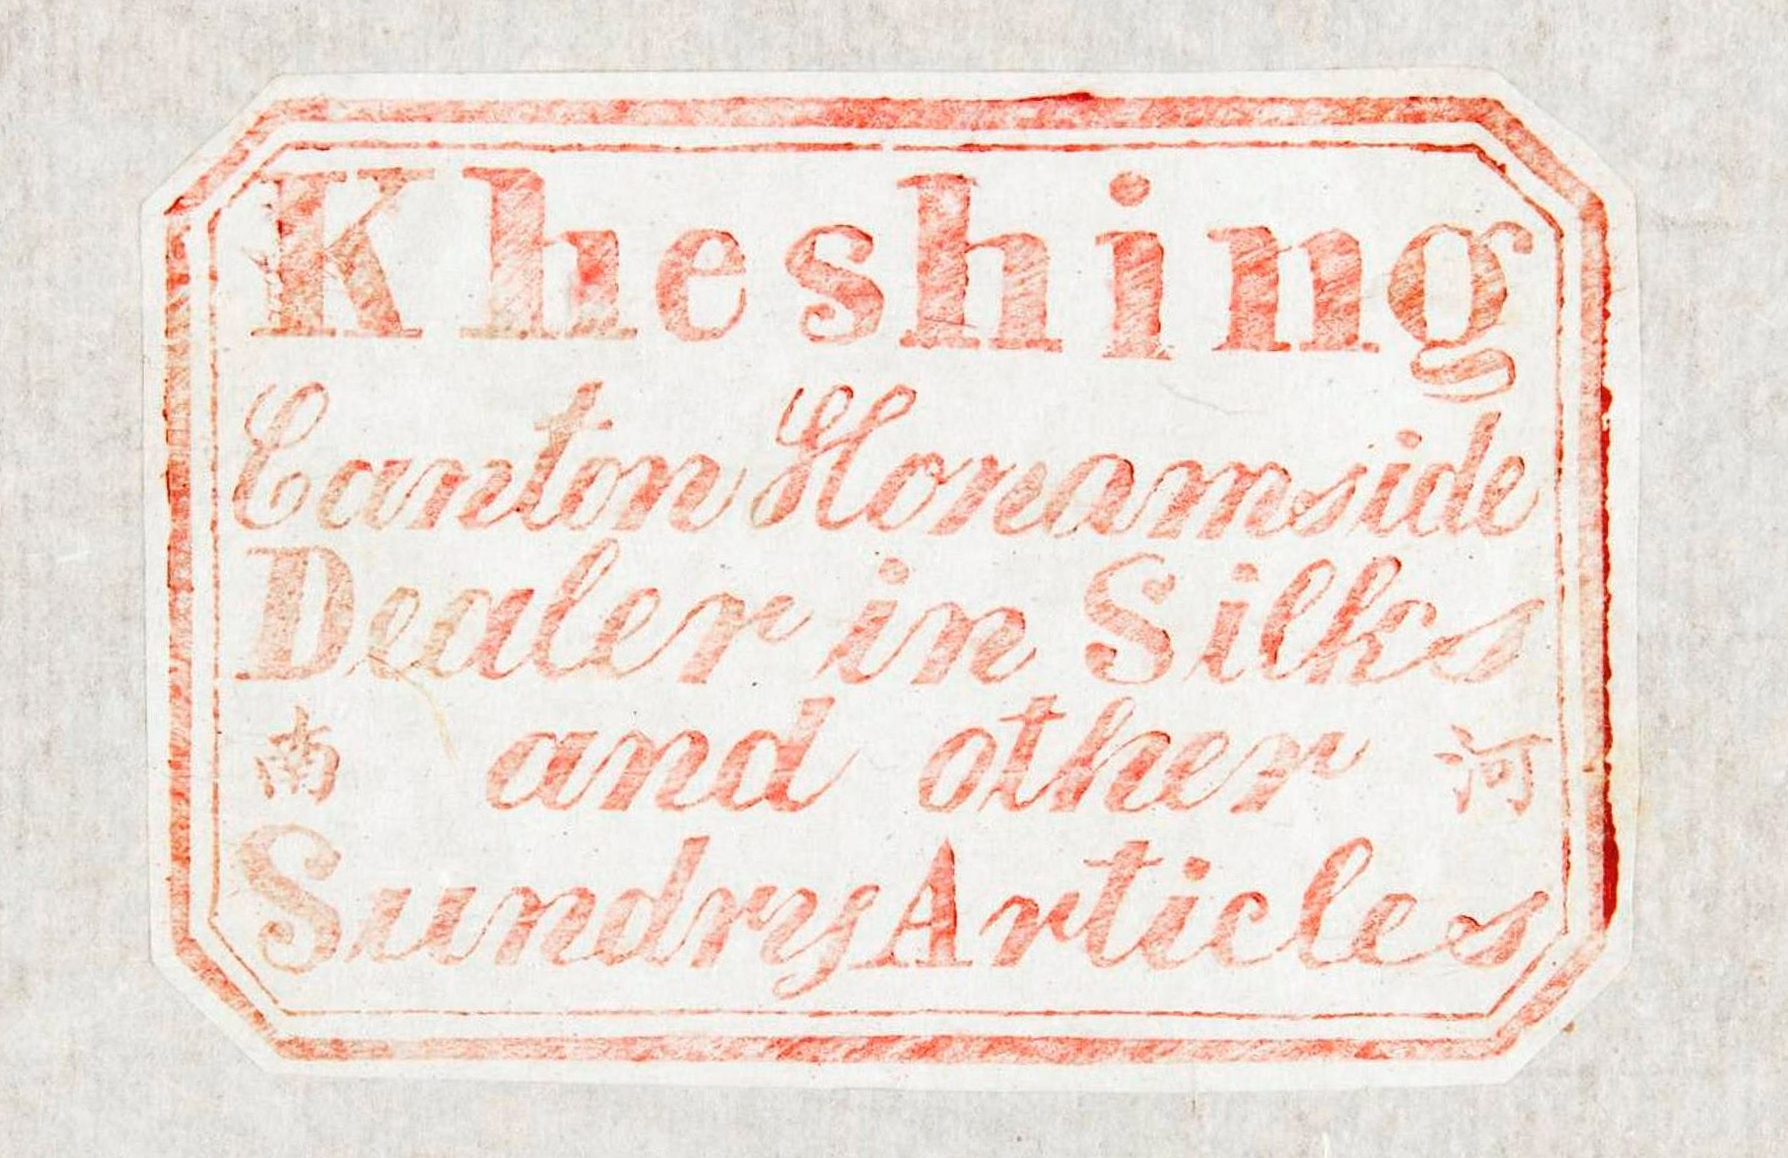 Kheshing studio label